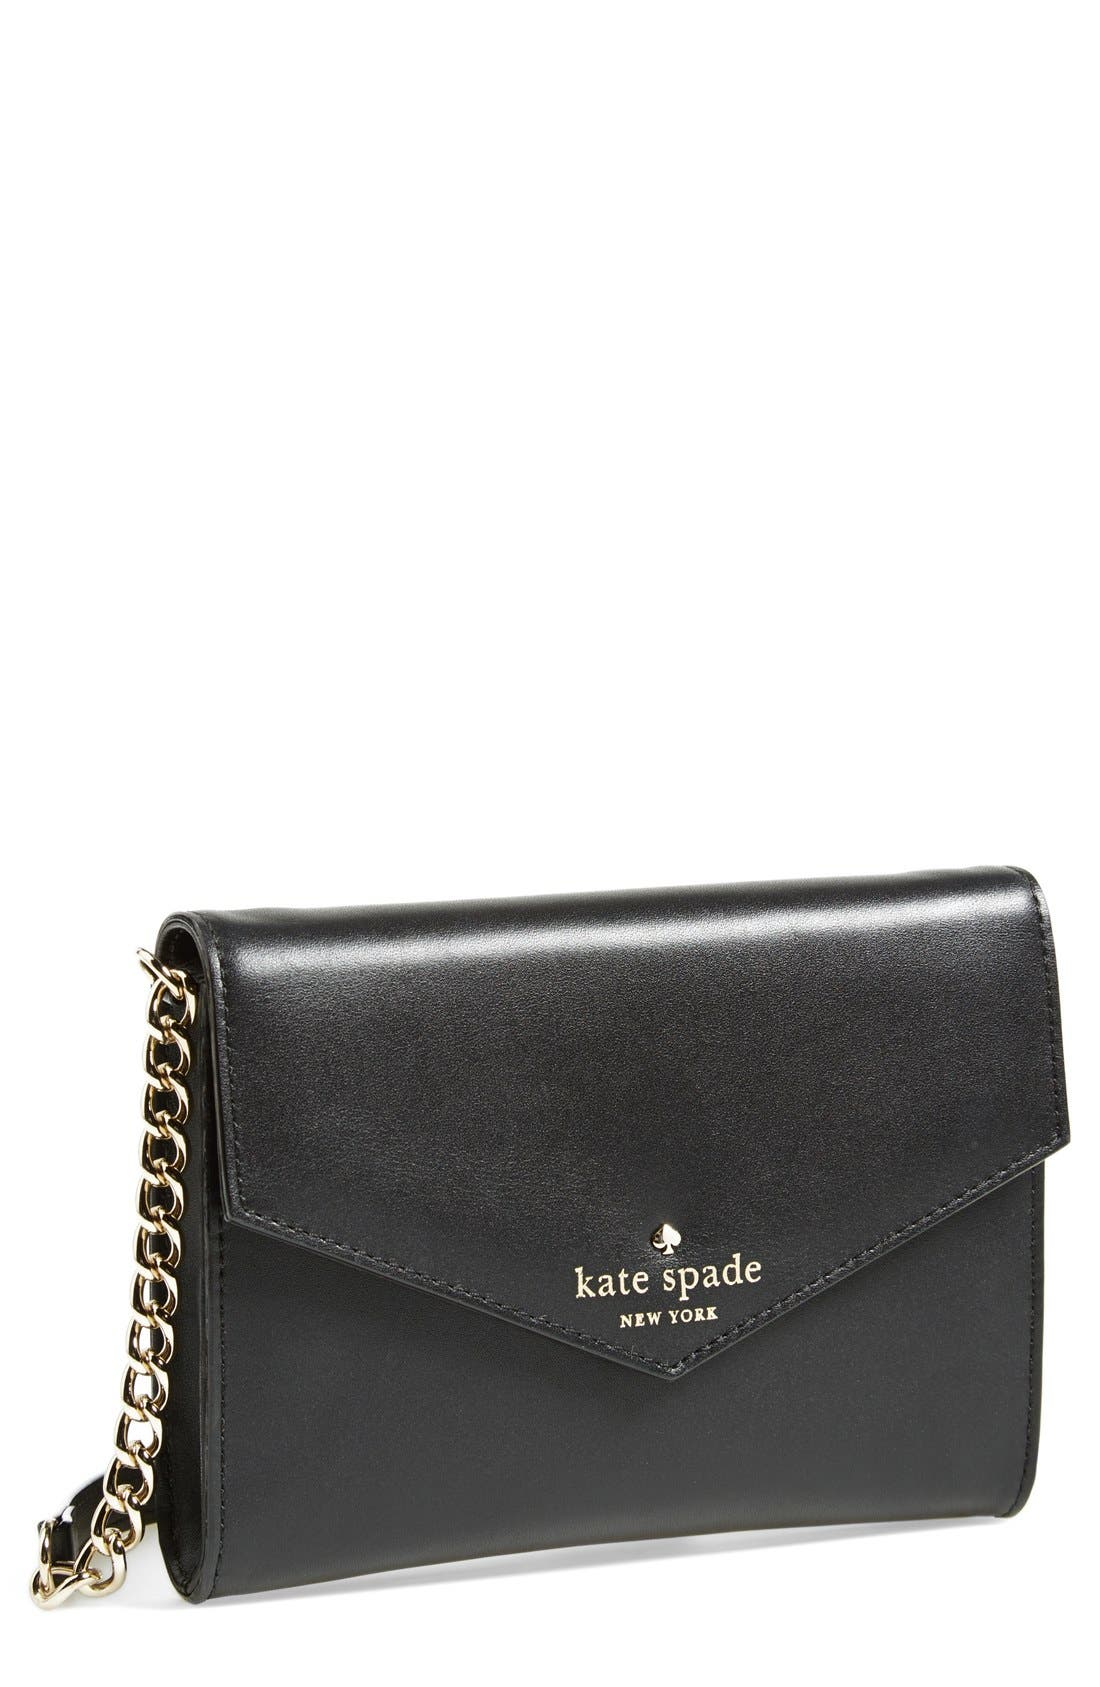 Main Image - kate spade new york 'branton square - monday' crossbody bag (Nordstrom Exclusive)